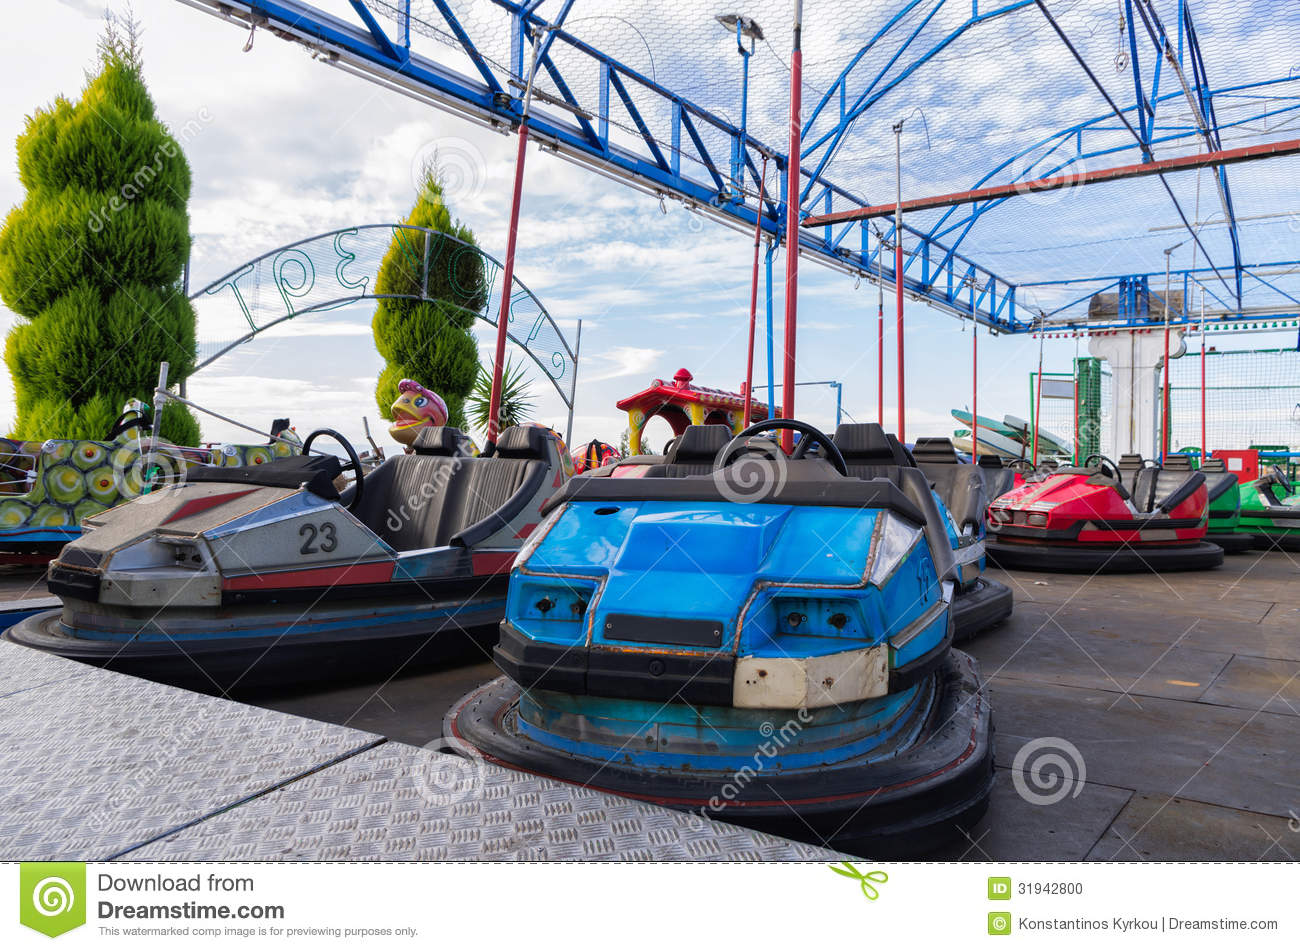 Old dodgem cars stock photo. Image of colorful, color - 31942800